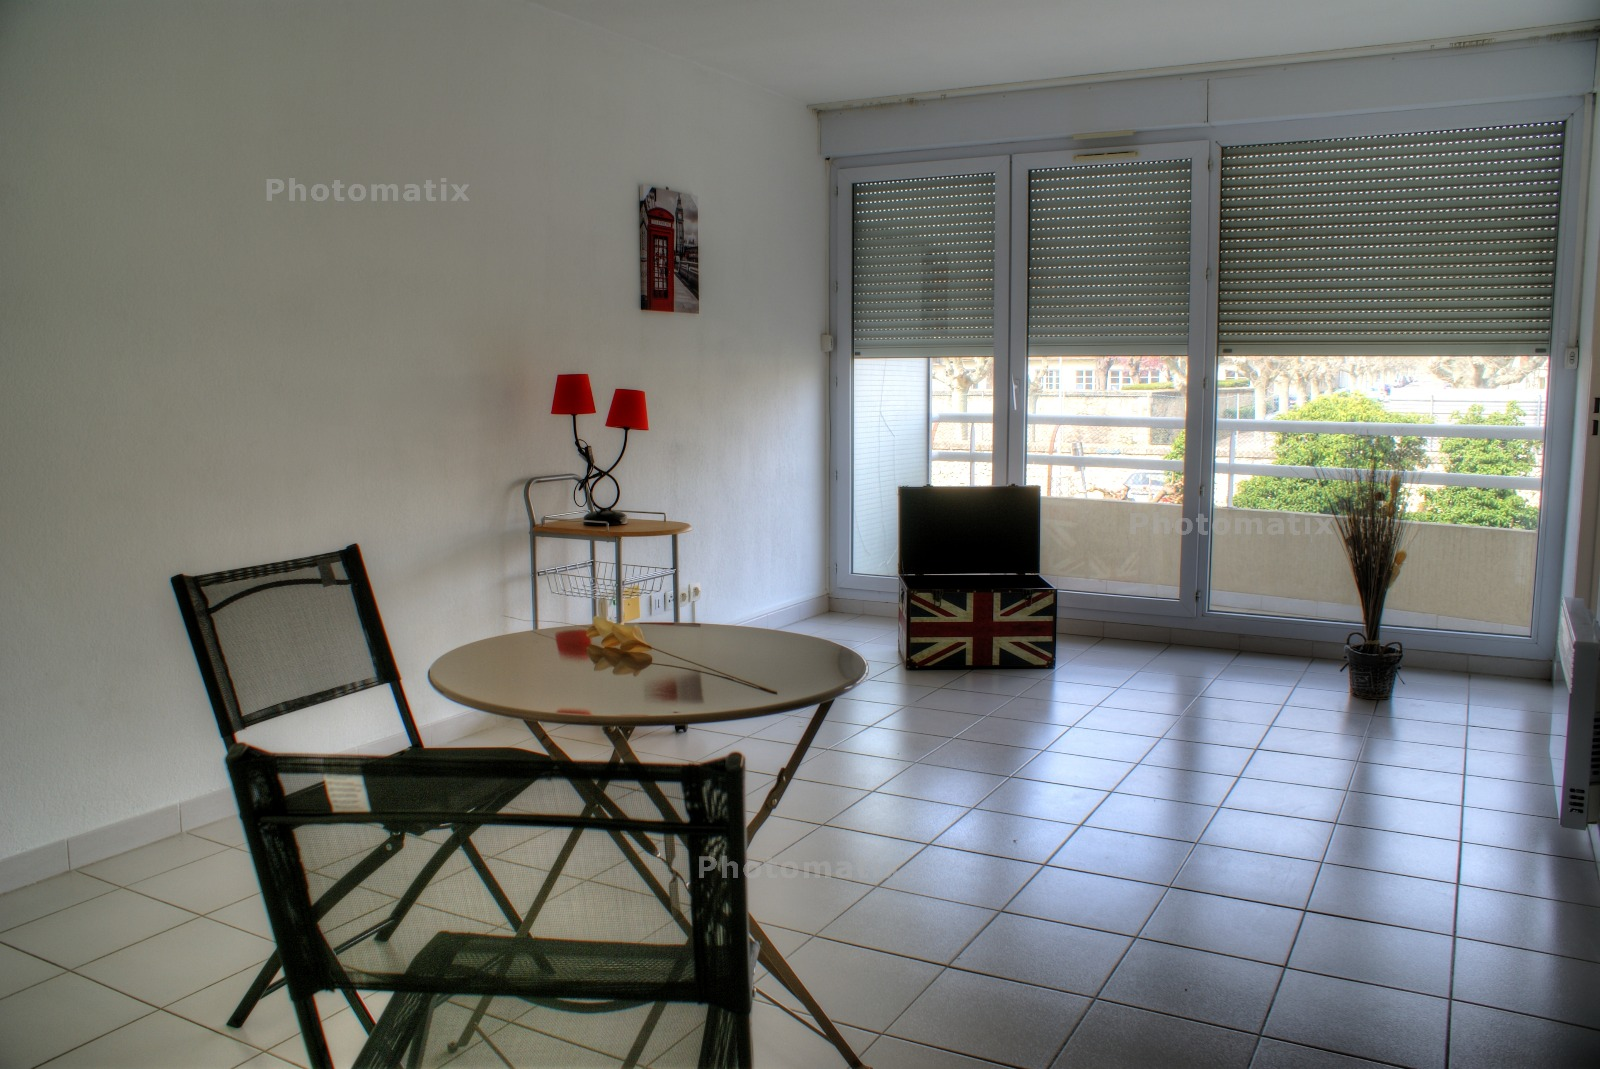 appartement montpellier nouveau vendre quartier hopitaux fac montpellier t2 avec balcon et. Black Bedroom Furniture Sets. Home Design Ideas